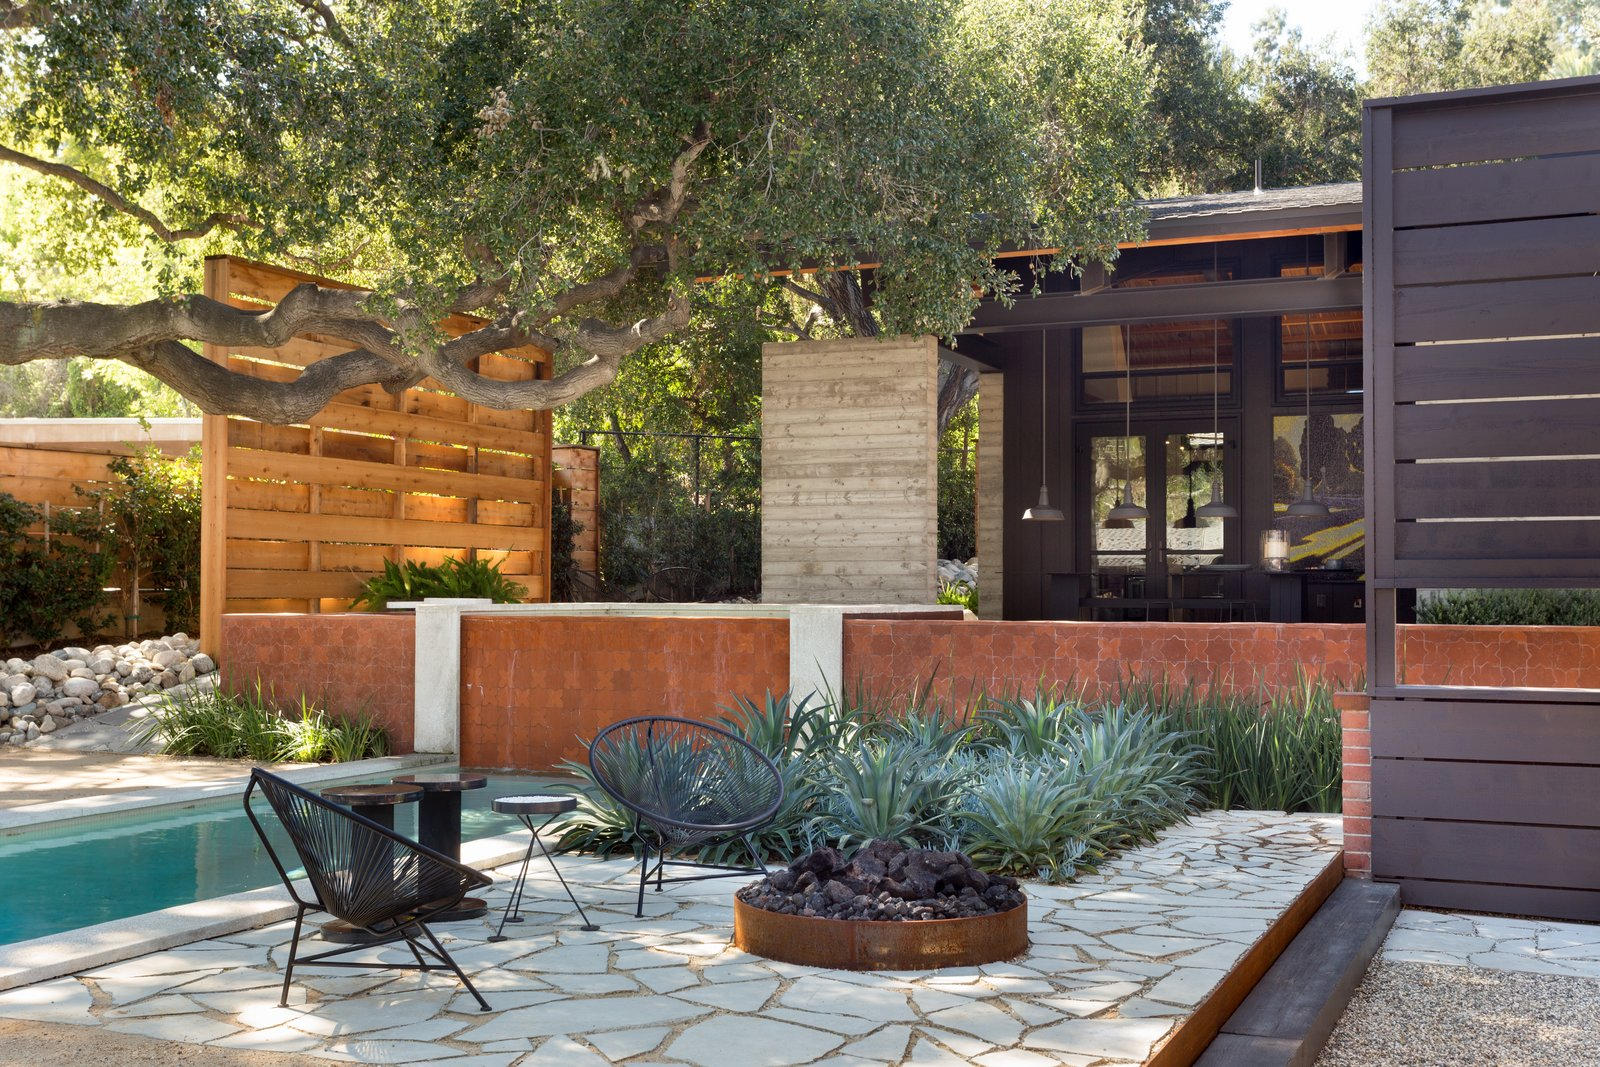 6 Backyard Landscape Designs That Need Minimal Maintenance Dwell inside 10 Clever Tricks of How to Build Landscaping Backyards